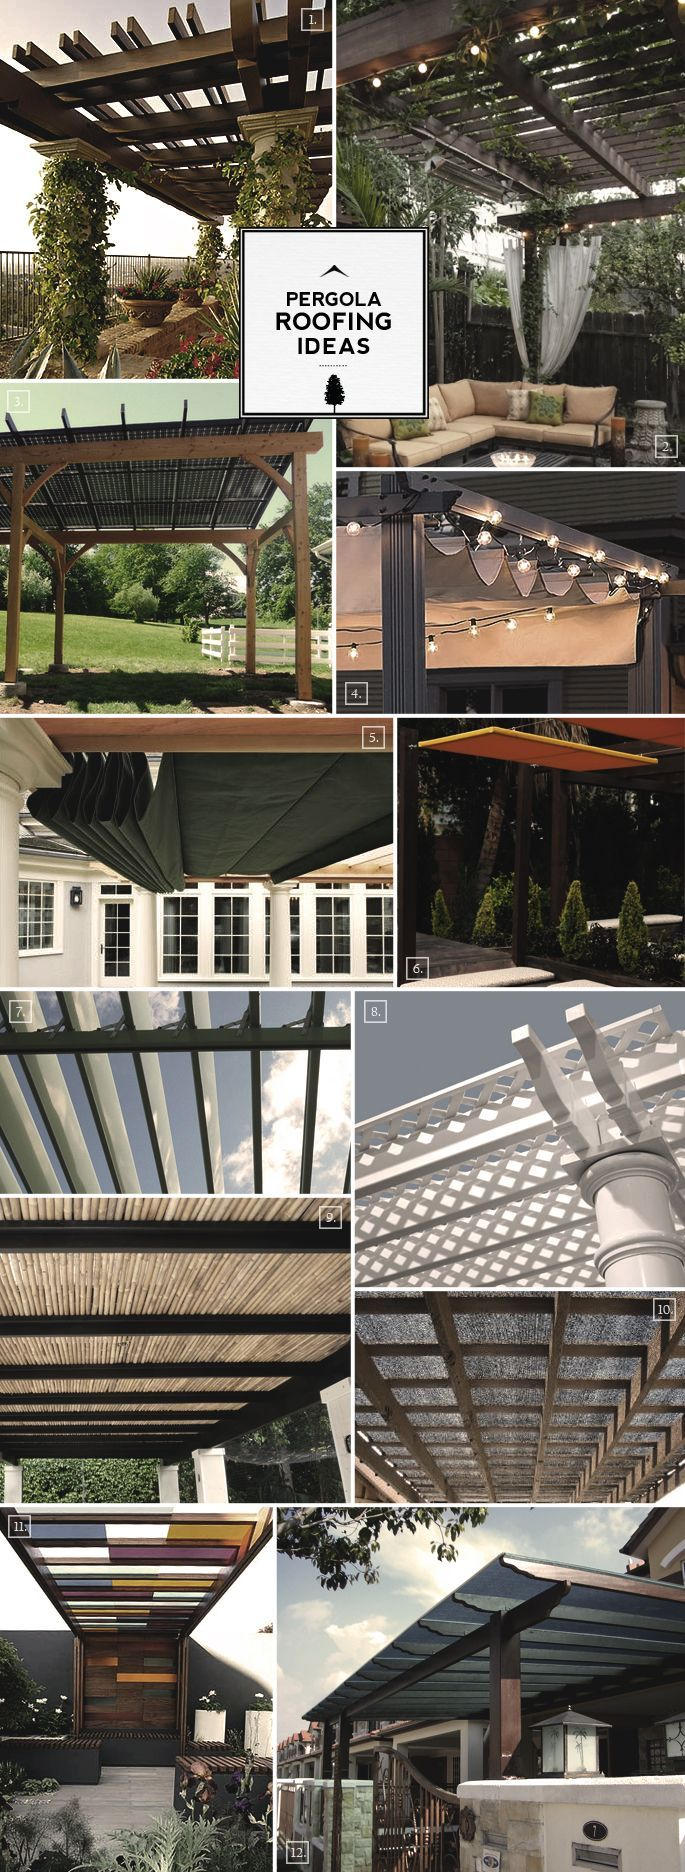 Layering Up: A lot of pergolas will only have one layer of overhead beams – say going in a vertical direction. One way of adding more shade and roofing to the pergola is to add another level of beams – this time going in the horizontal direction as seen in picture (1). Going Natural: A […] - http://www.homedecoratings.net/layering-up-a-lot-of-pergolas-will-only-have-one-layer-of-overhead-beams-say-going-in-a-vertical-direction-one-way-of-adding-more-shade-and-roofing-to